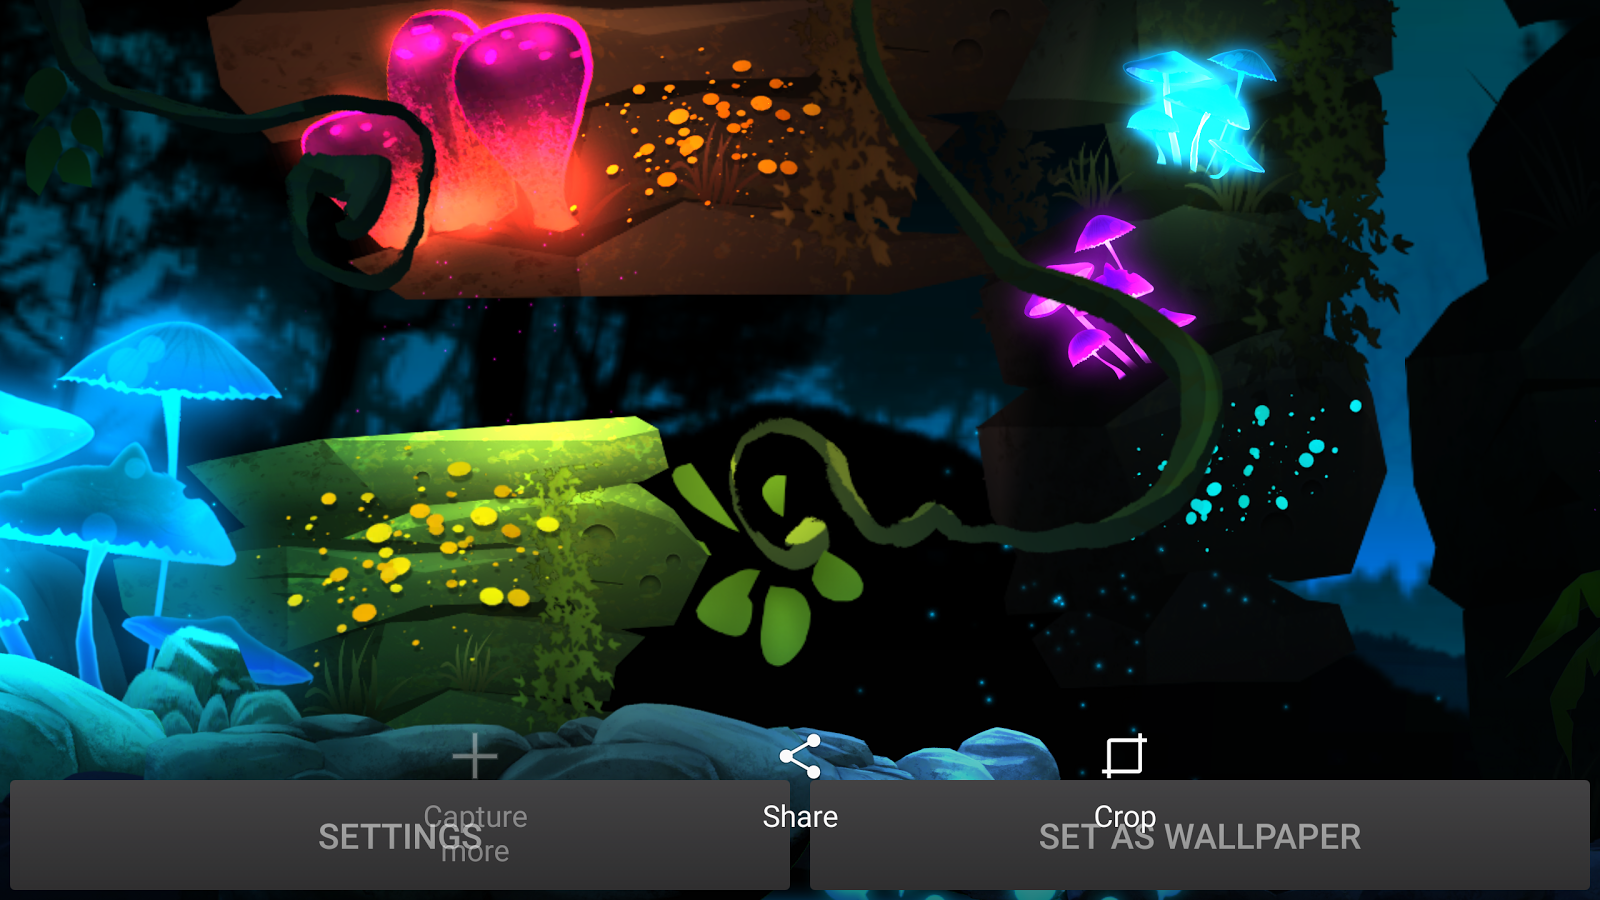 Glowing Jungle Live Wallpaper Screenshot 9